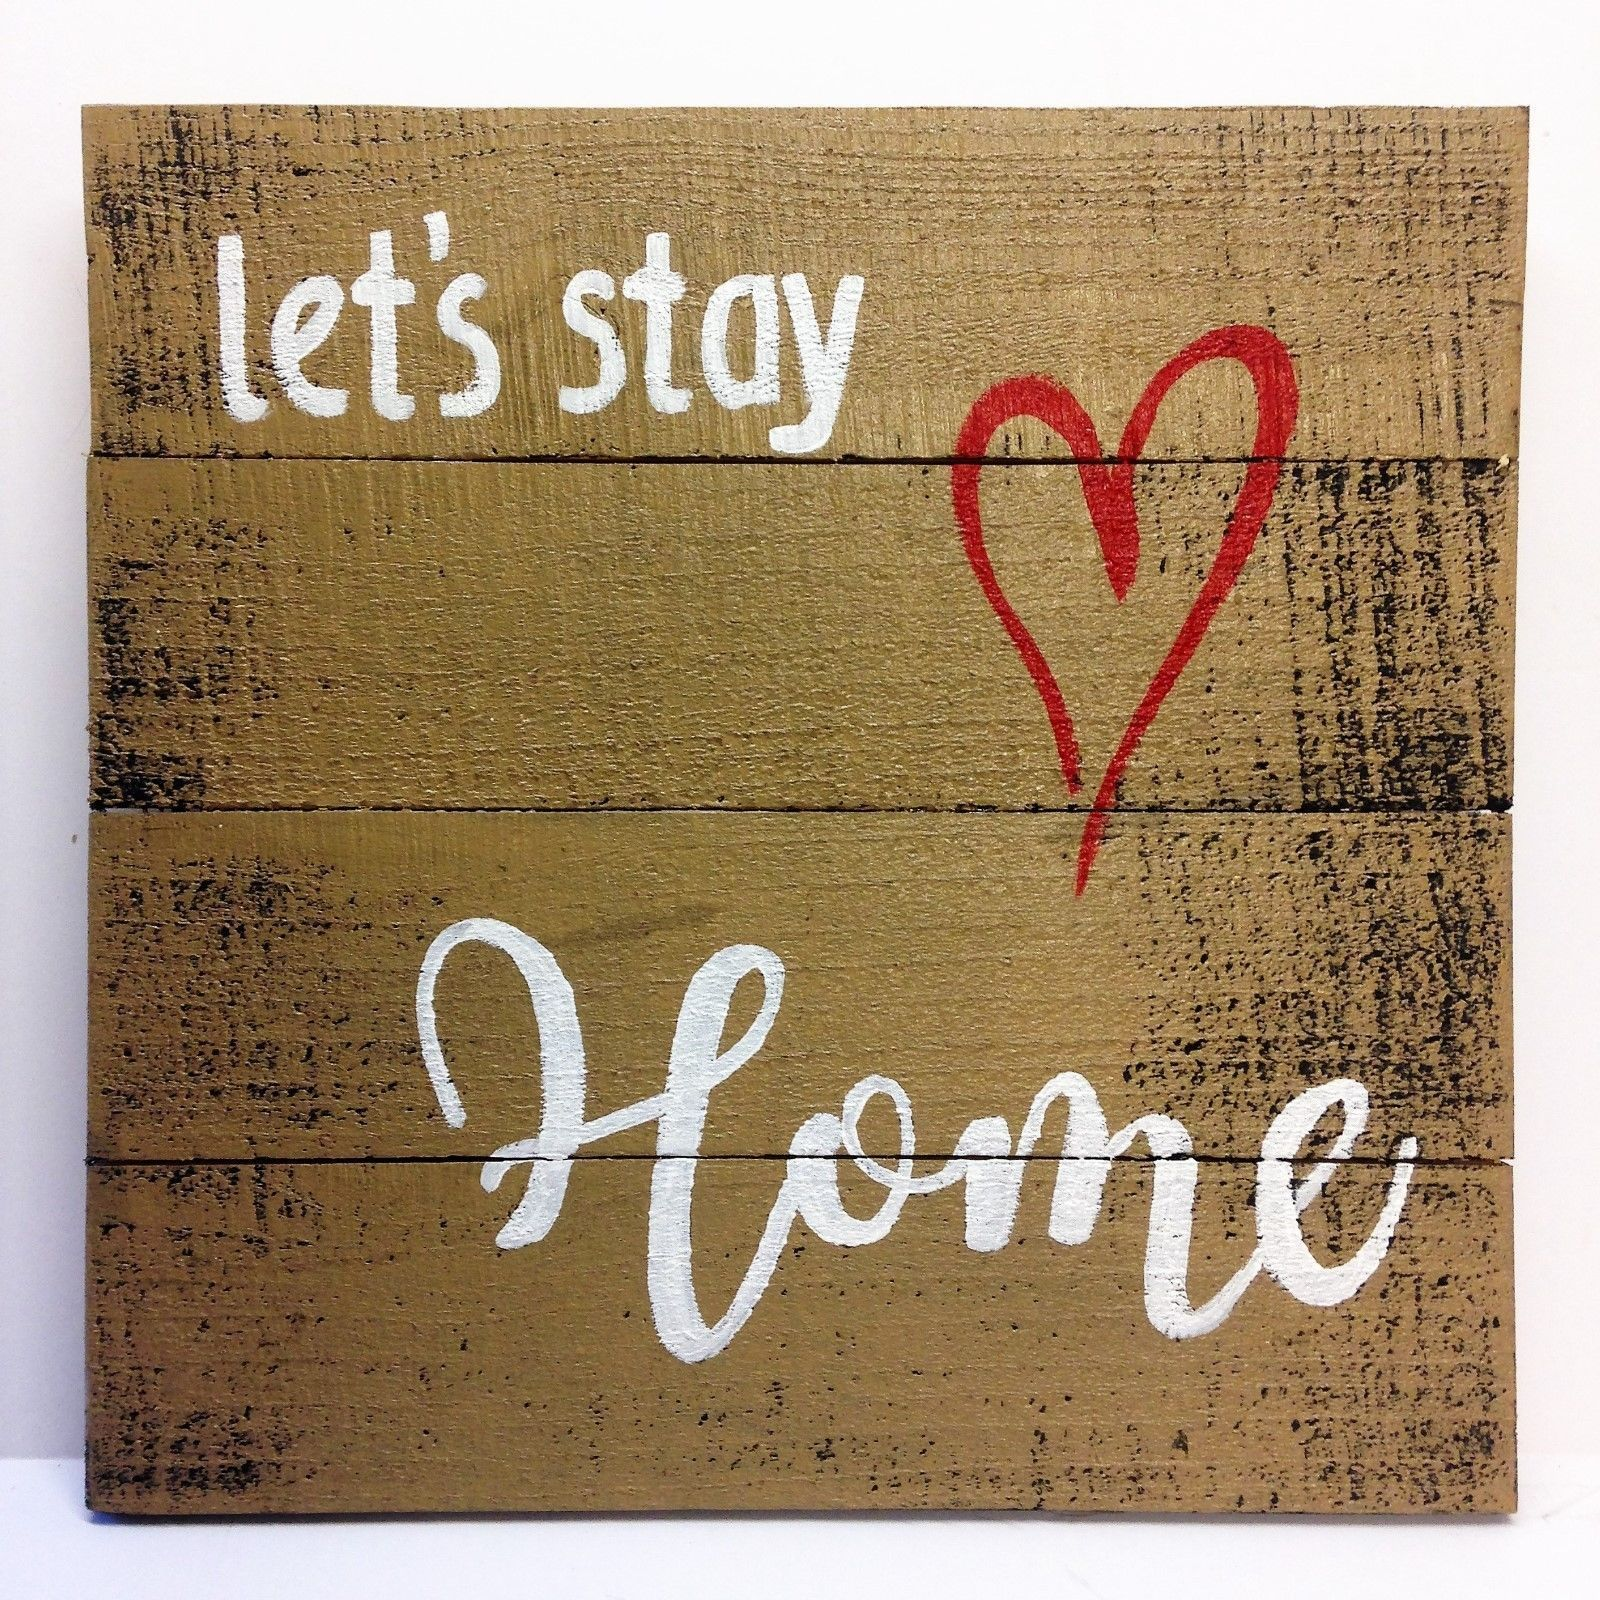 Let   stay home sign painted pallet boards inspirational decor wall hanging also rh pinterest